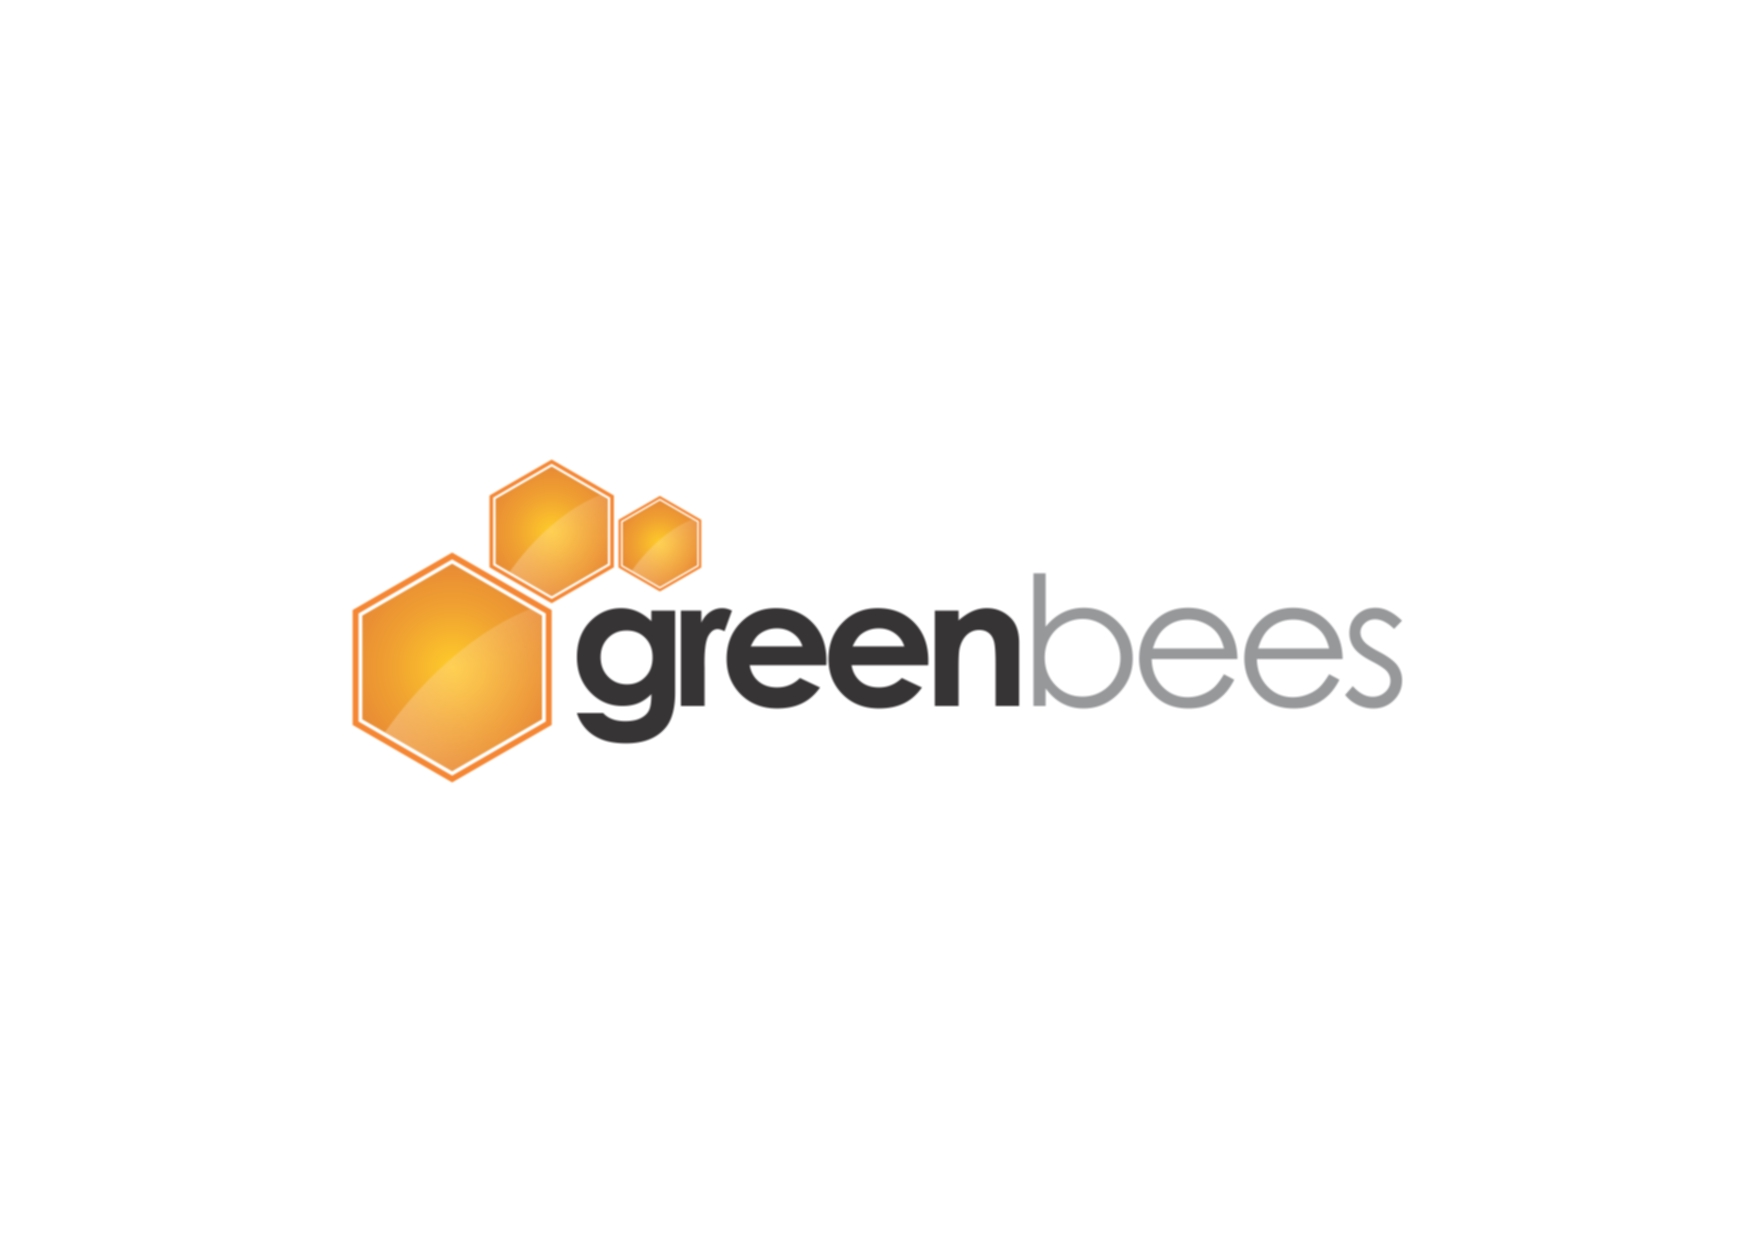 Logo Design by Private User - Entry No. 23 in the Logo Design Contest Greenbees Logo Design.